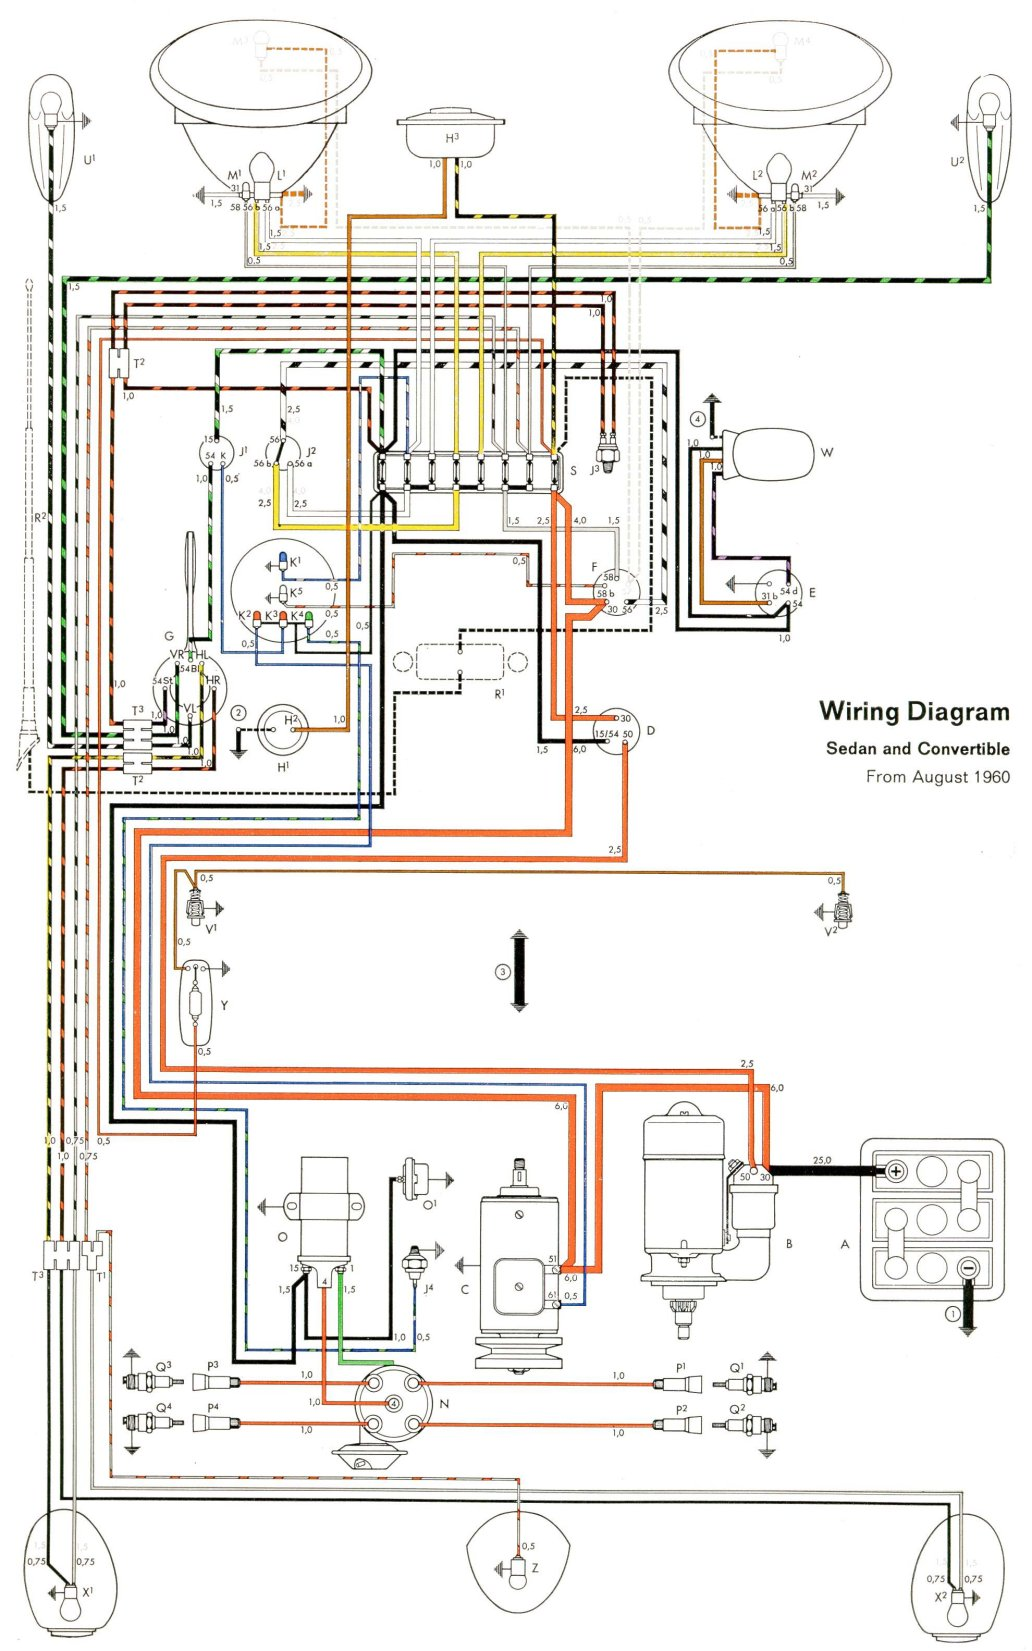 1964 oldsmobile wiring diagram 1970 beetle wiring diagram uk 1970 wiring diagrams online beetle wiring diagram uk oldsmobile